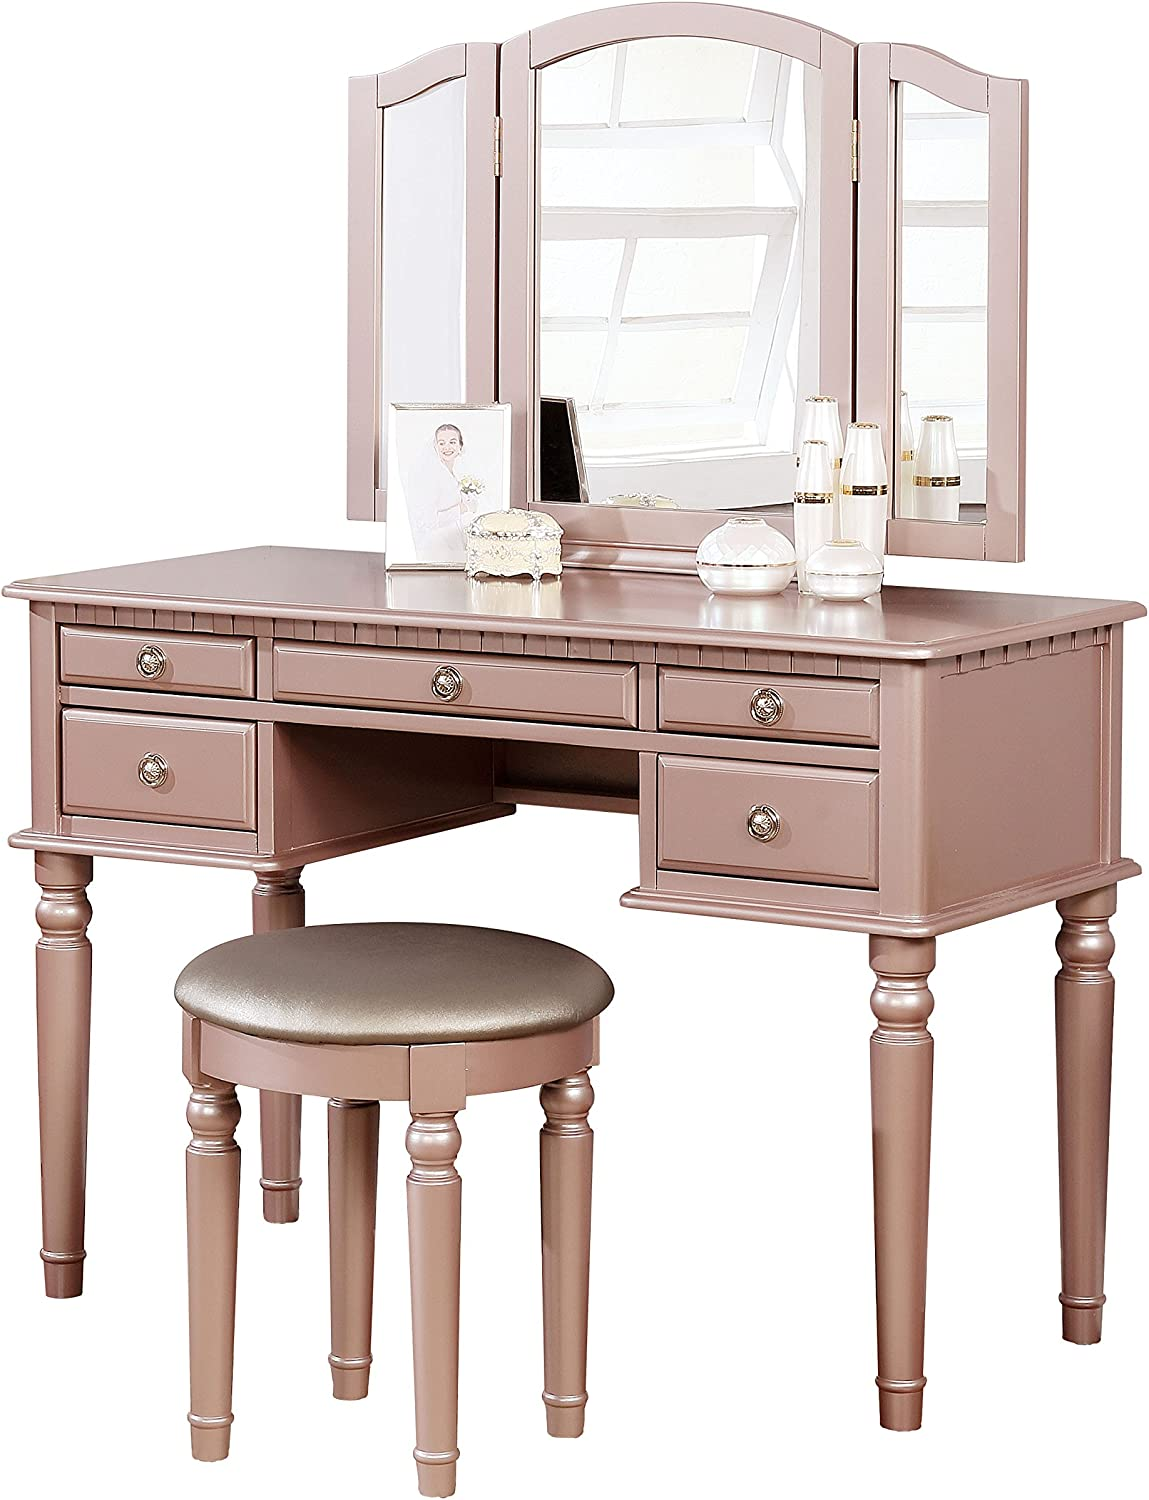 BOBKONA PDEX- Croix Collection Vanity Set With Stool, Rose Gold